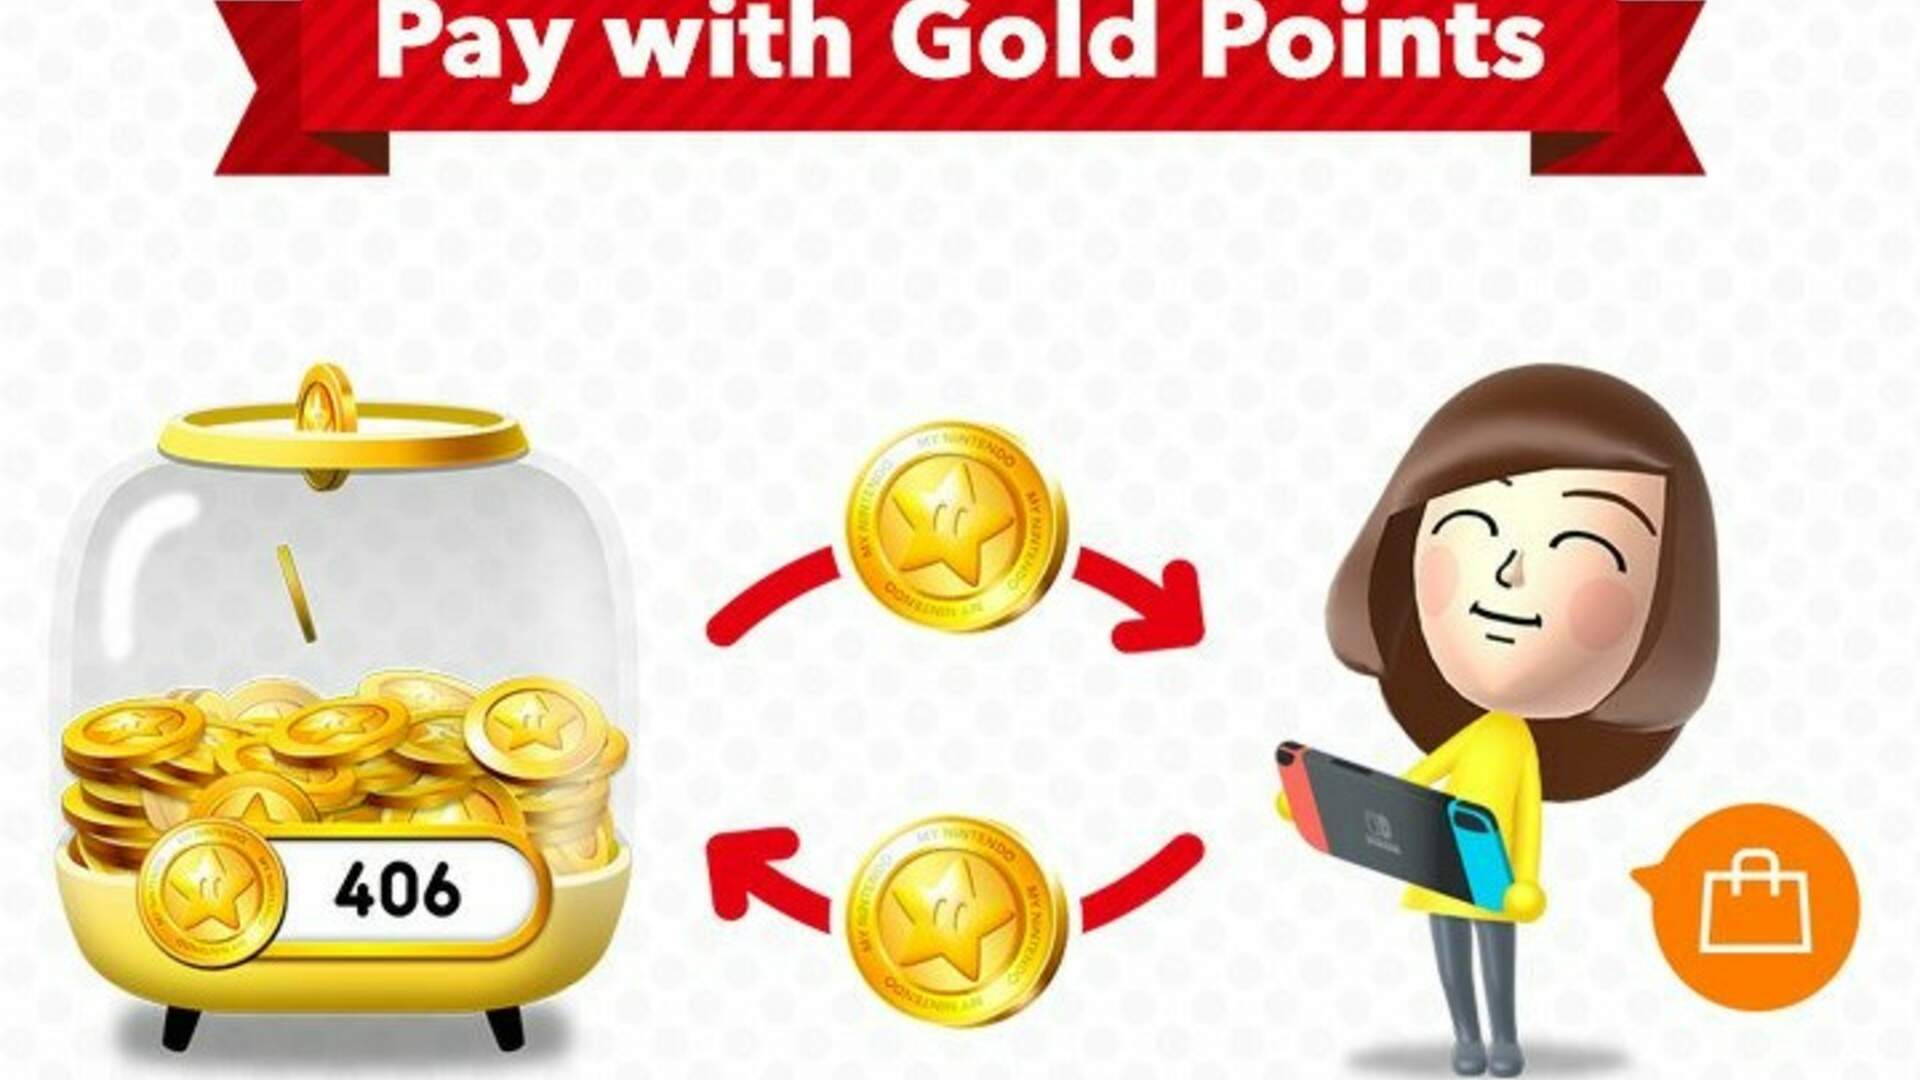 Nintendo Gold Points Can be Used to Buy a Switch Online Subscription, but You're Probably Better Off Just Paying For It